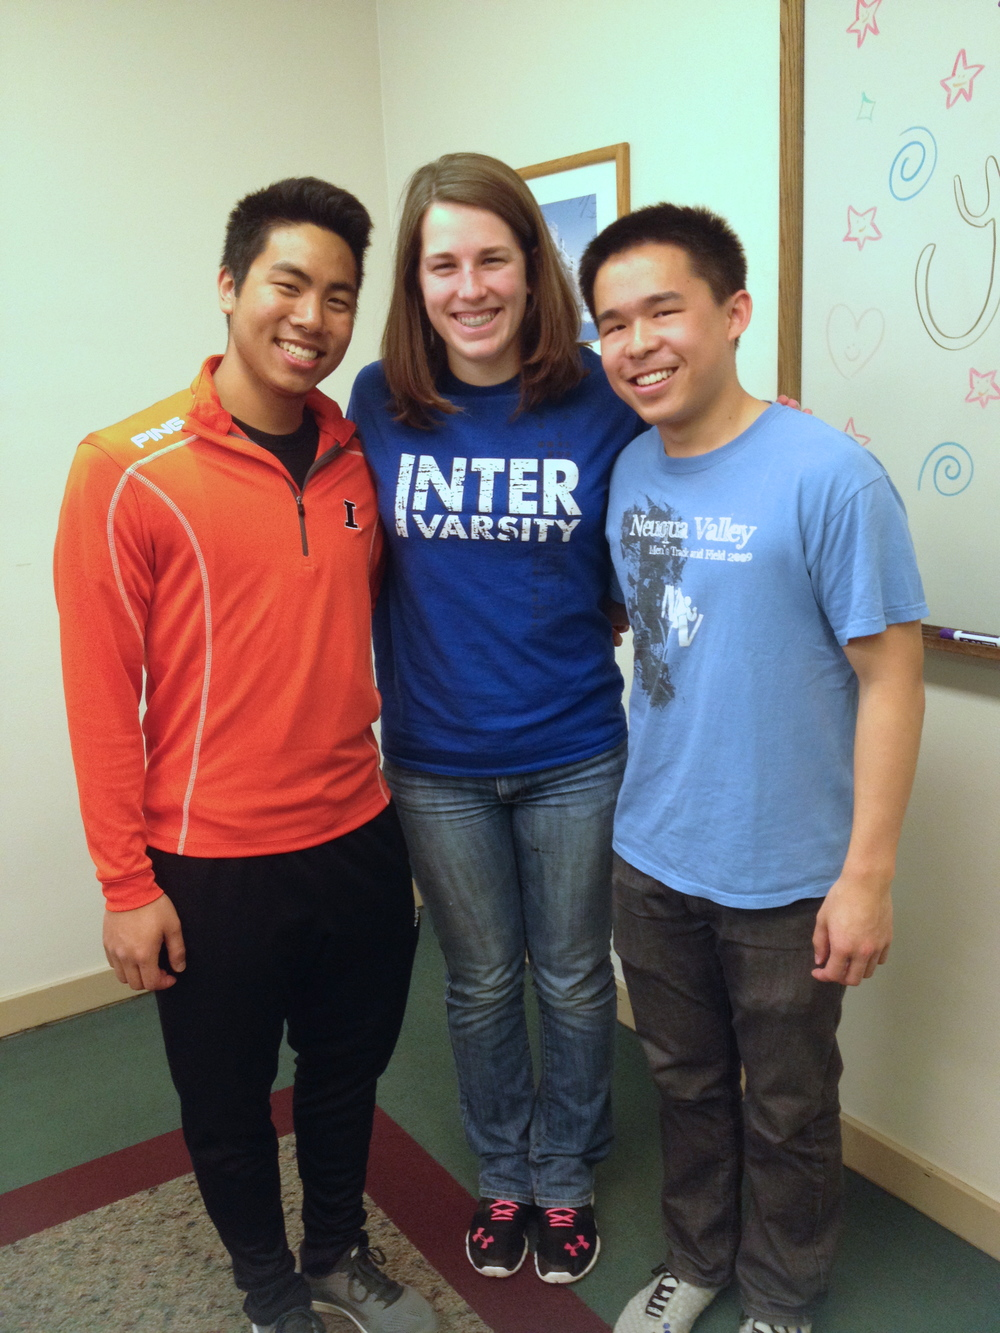 Laura with Austin (left) and Mike, another student in their InterVarsity chapter.